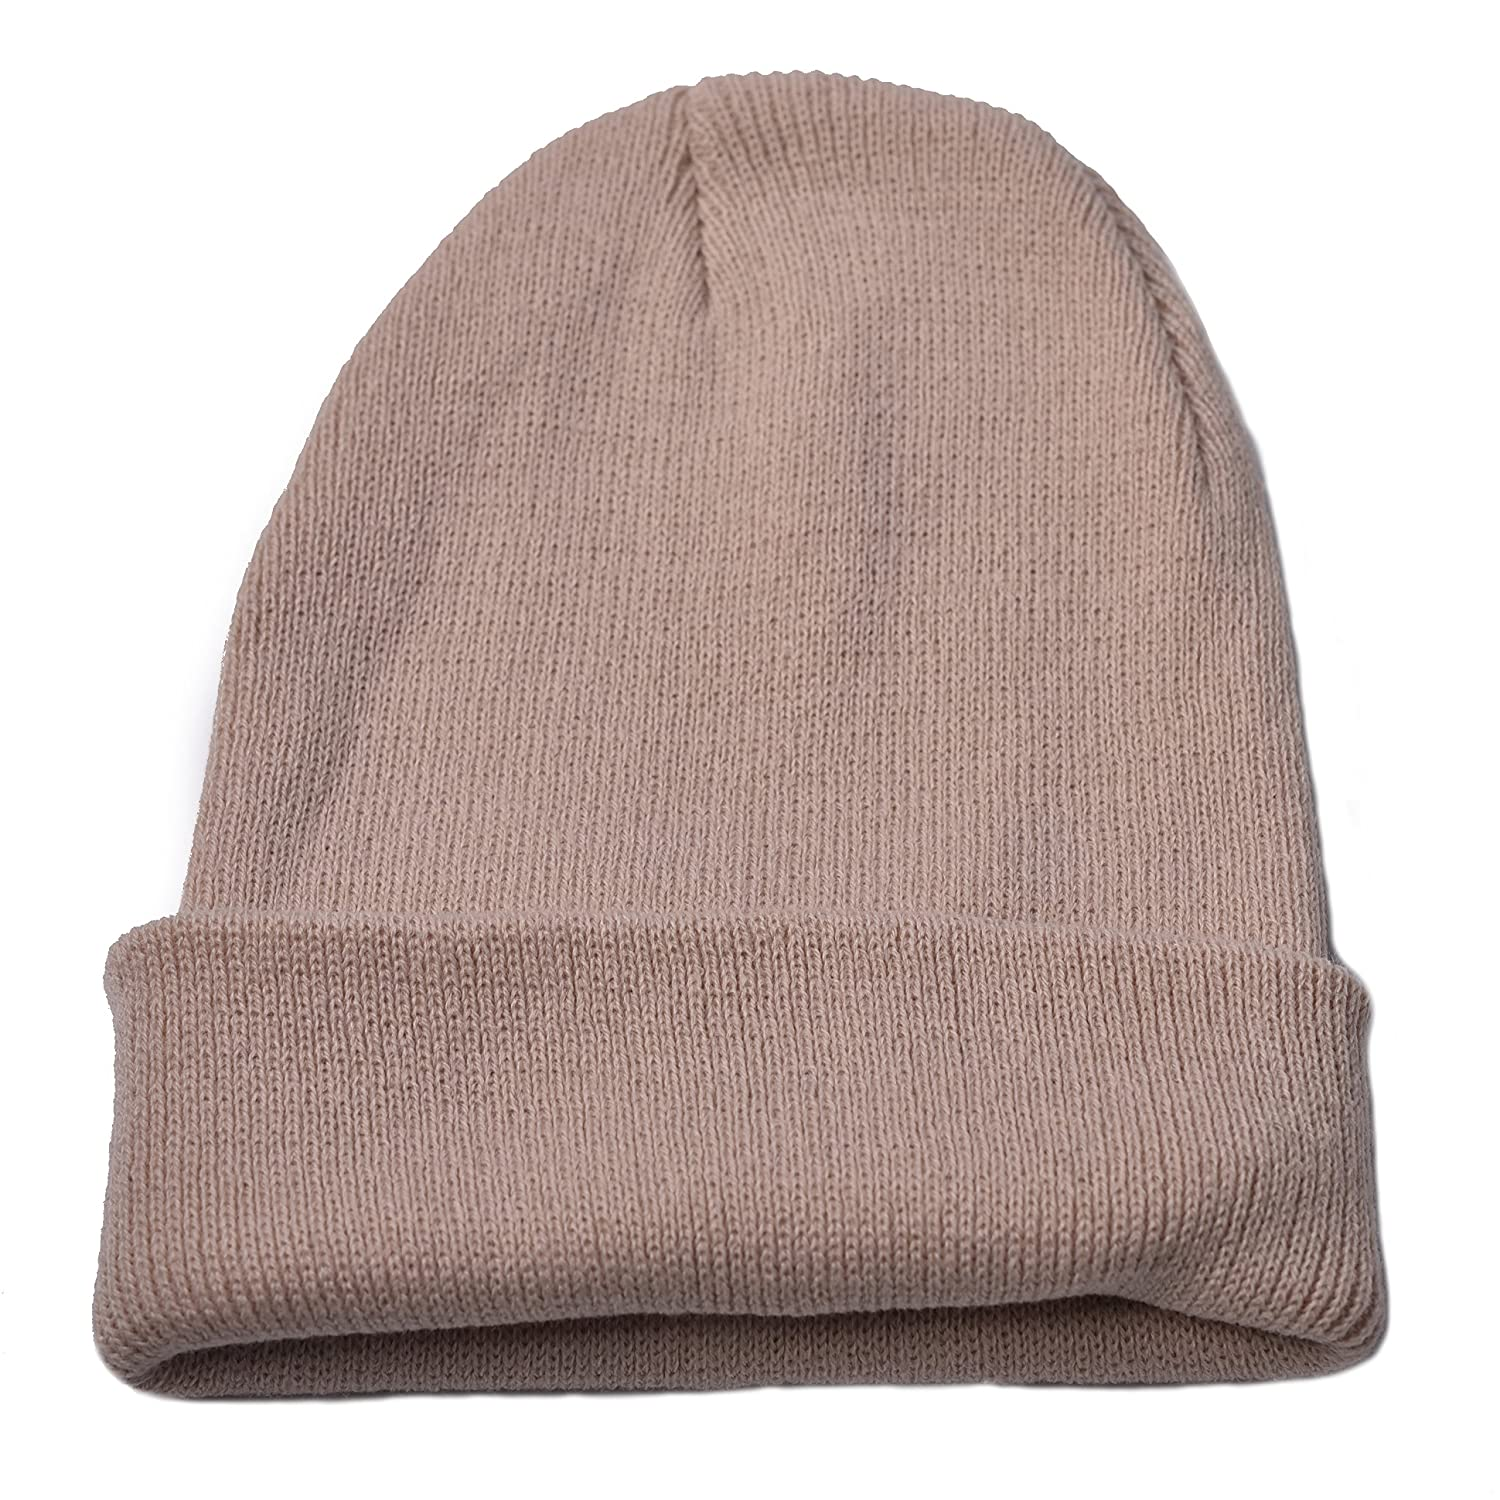 Woogwin Beanie Cap Winter Hats for Men Women Knitted Warm Hat Solid Color (Blue) WH161108002CWG19